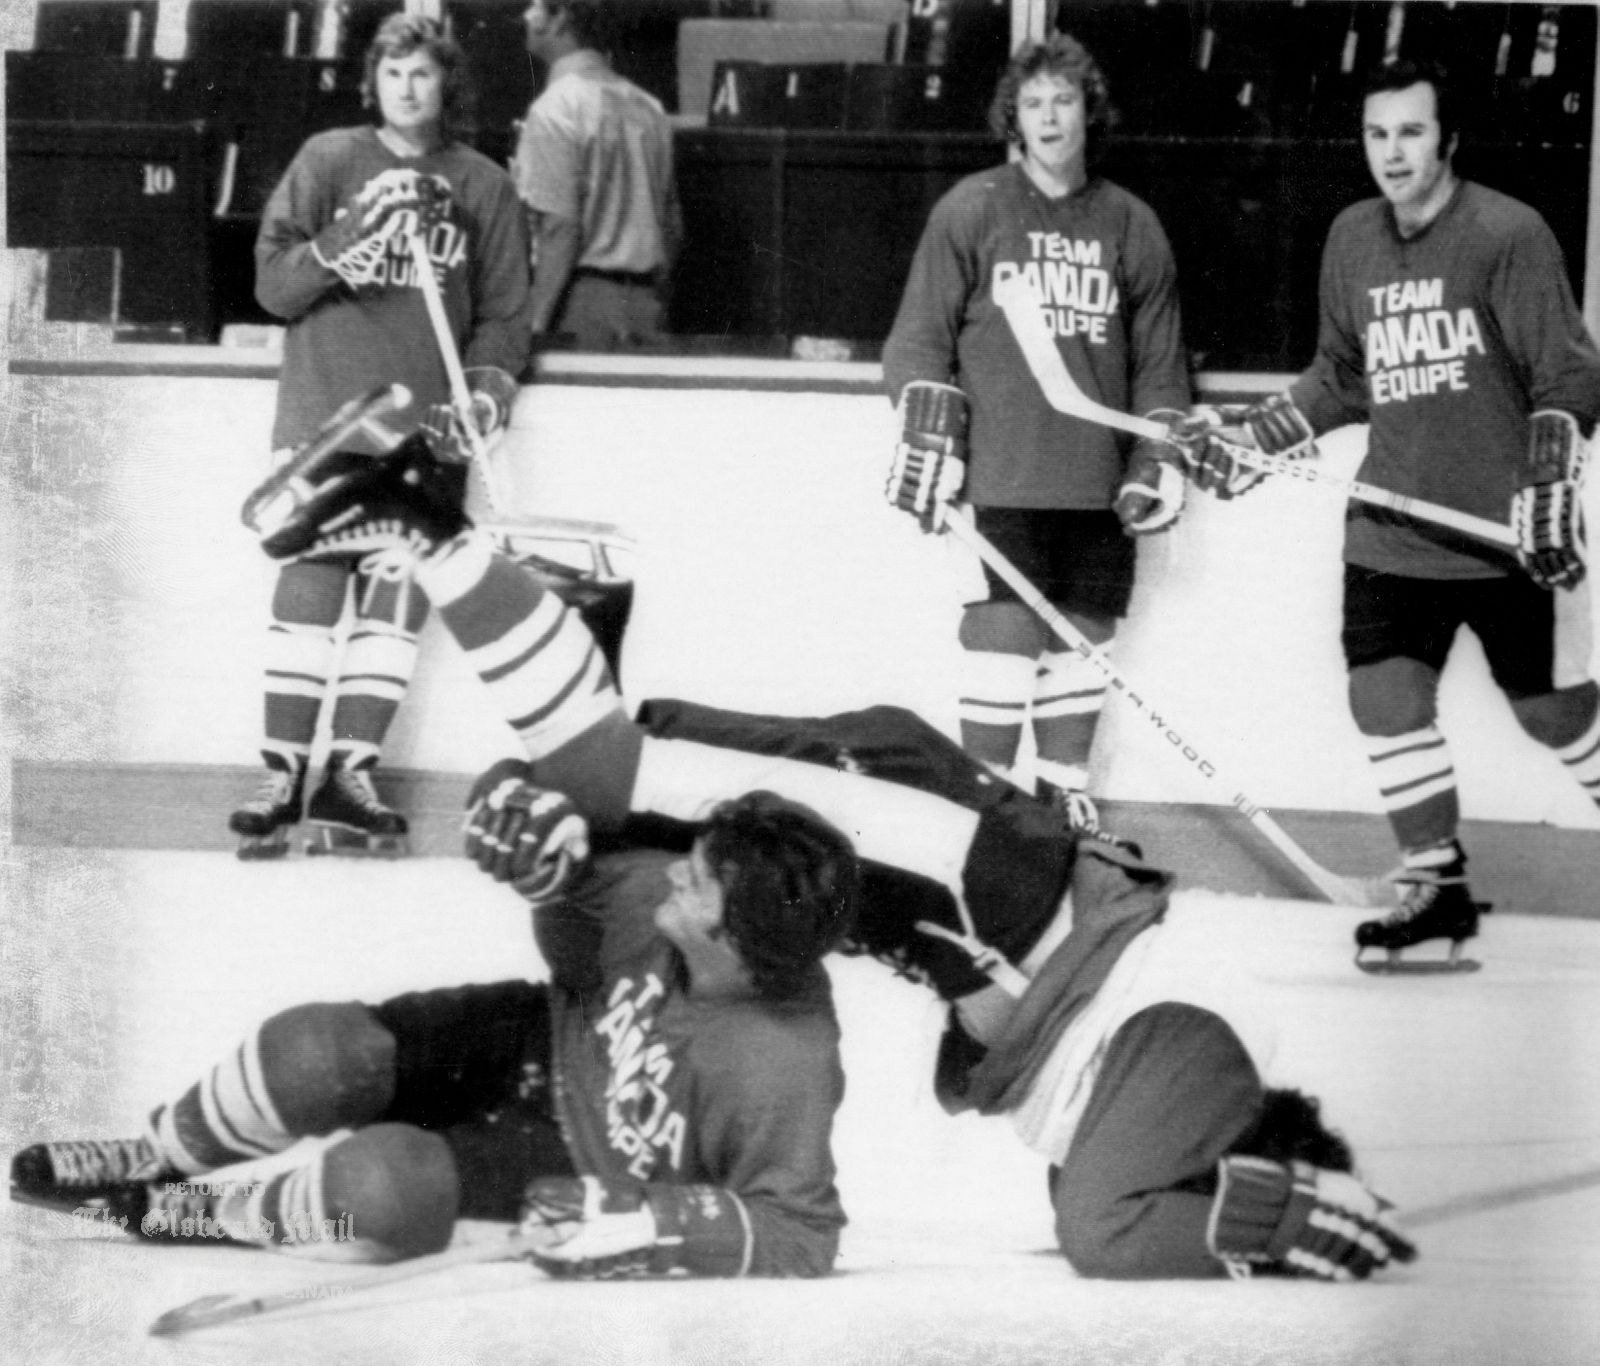 SEPTEMBER 1, 1972 -- MONTREAL -- TEAM CANADA PRACTICE -- Brian Glennie of the Toronto Maple Leafs topples over Marcel Dionne of the Detroit Red Wings at the Montreal Forum, Friday, Sept. 1, 1972. The two escaped injury while other members of Team Canada look on. Members of Team Canada are practicing for Saturday night's game which is the first of the Canada-Russia summit series. CP PHOTO